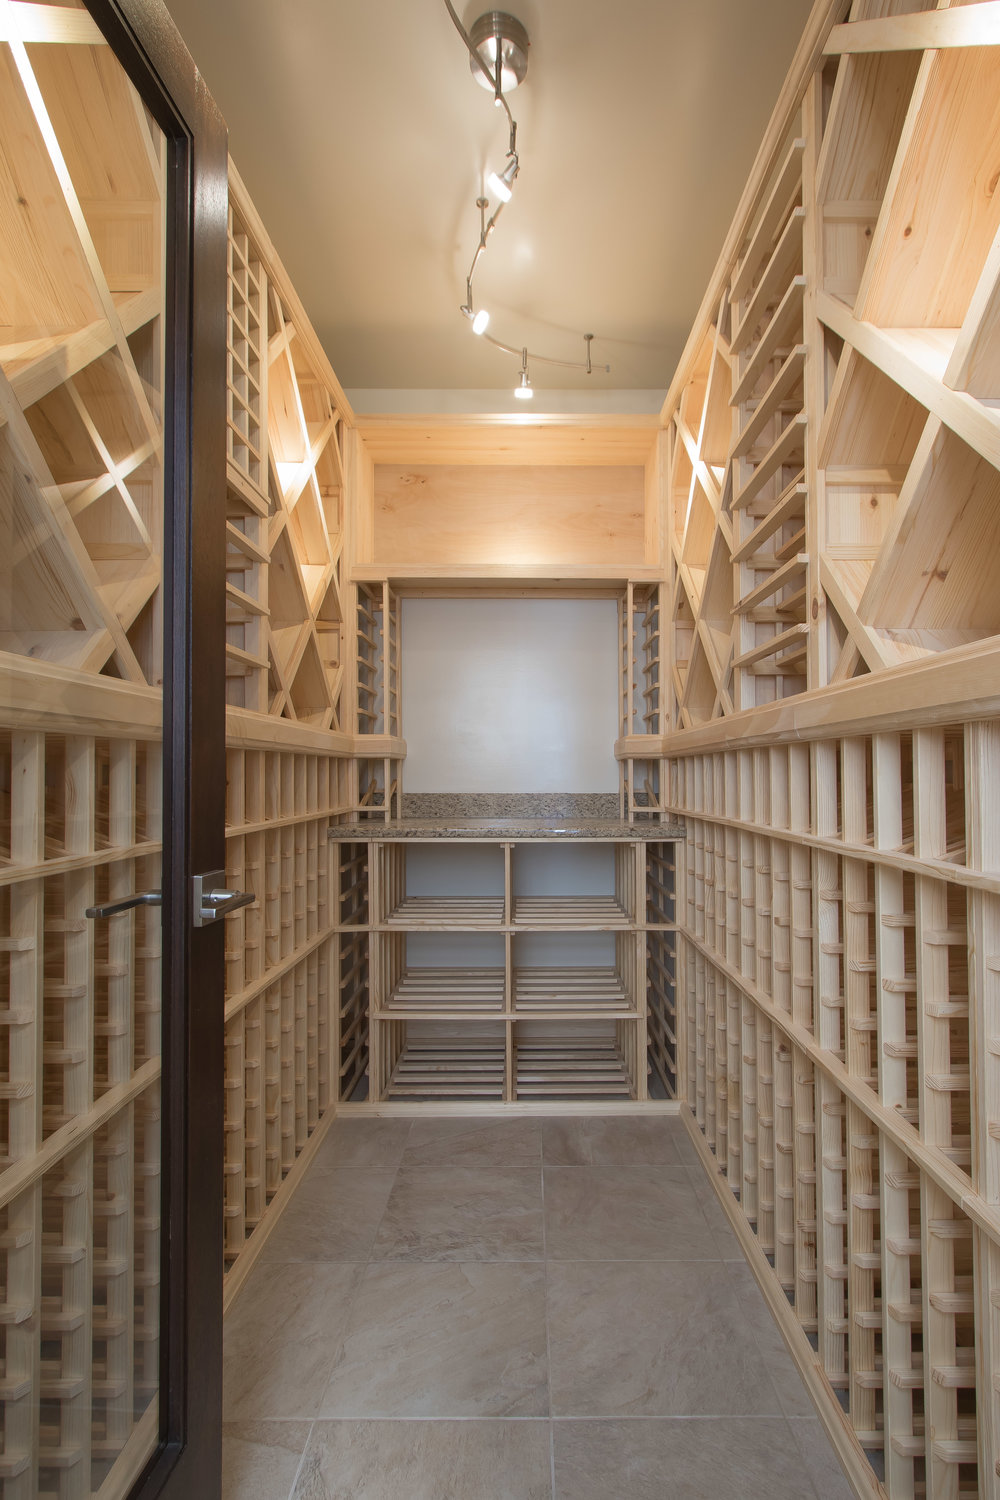 10122016_CUS-15-096__Wine cellar_Custom built ins.JPG